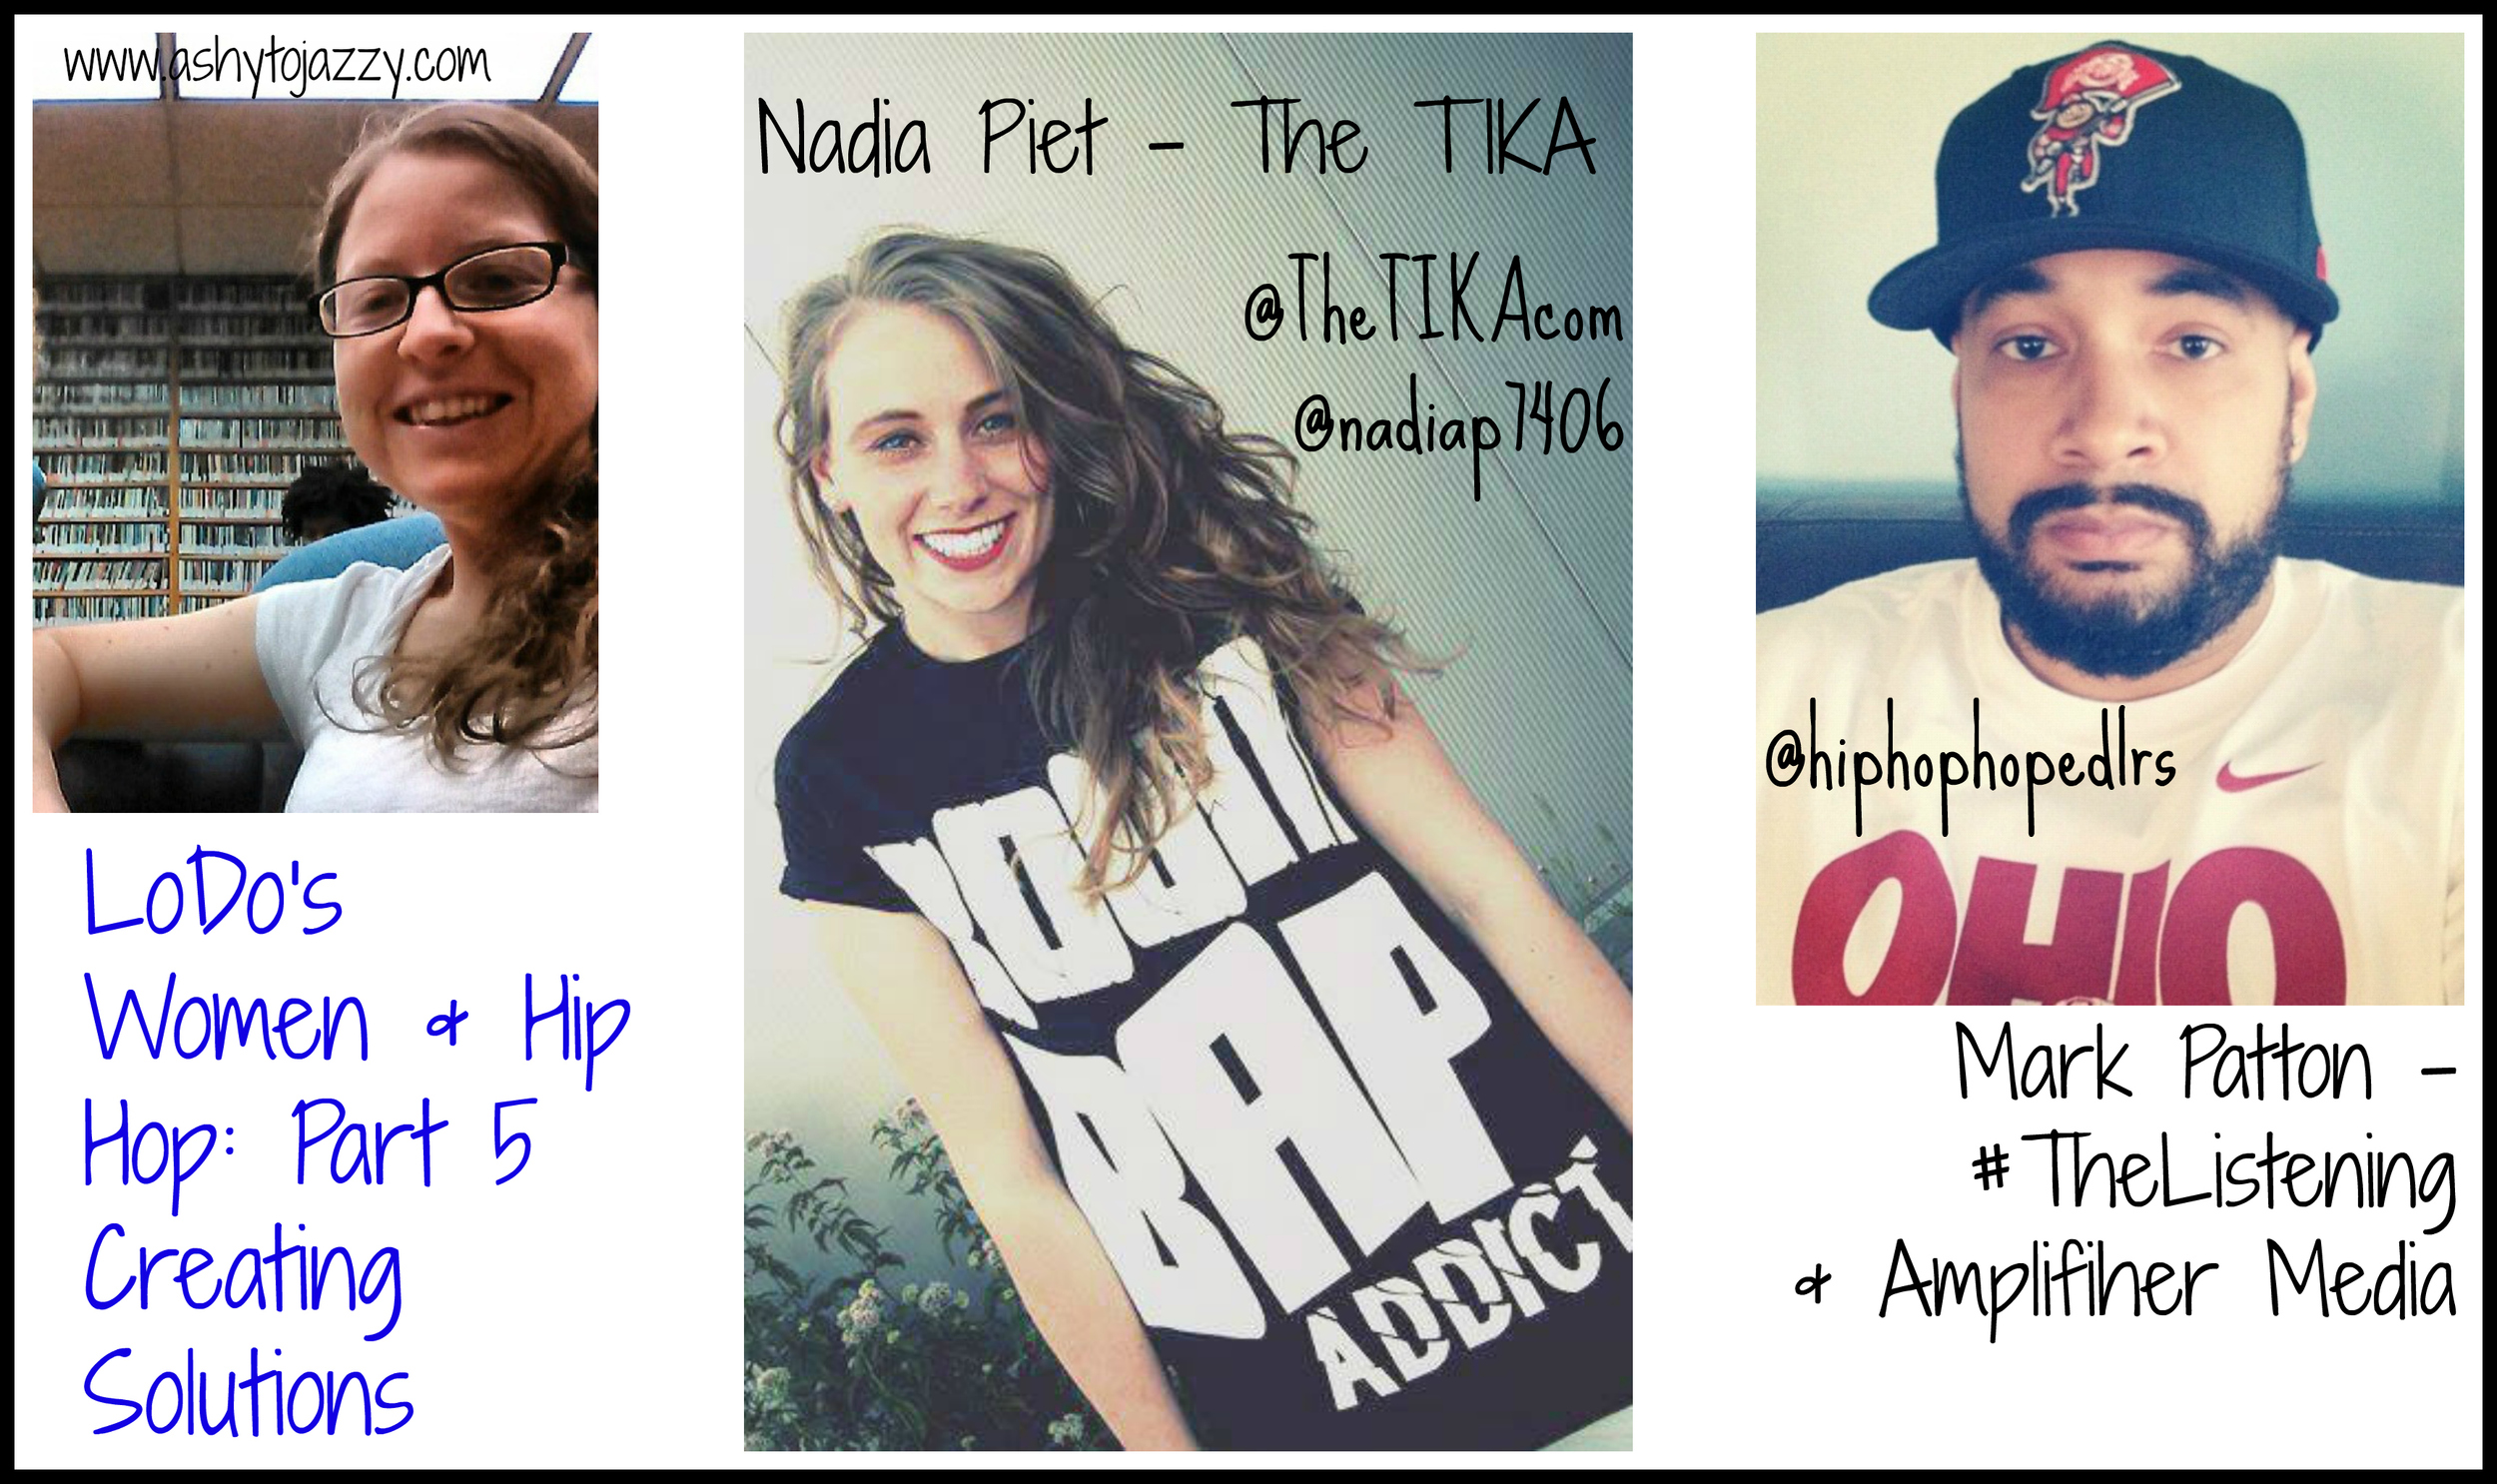 LoDo Mark Patton Nadia Piet #TheListening The TIKA women and hip hop series part 5